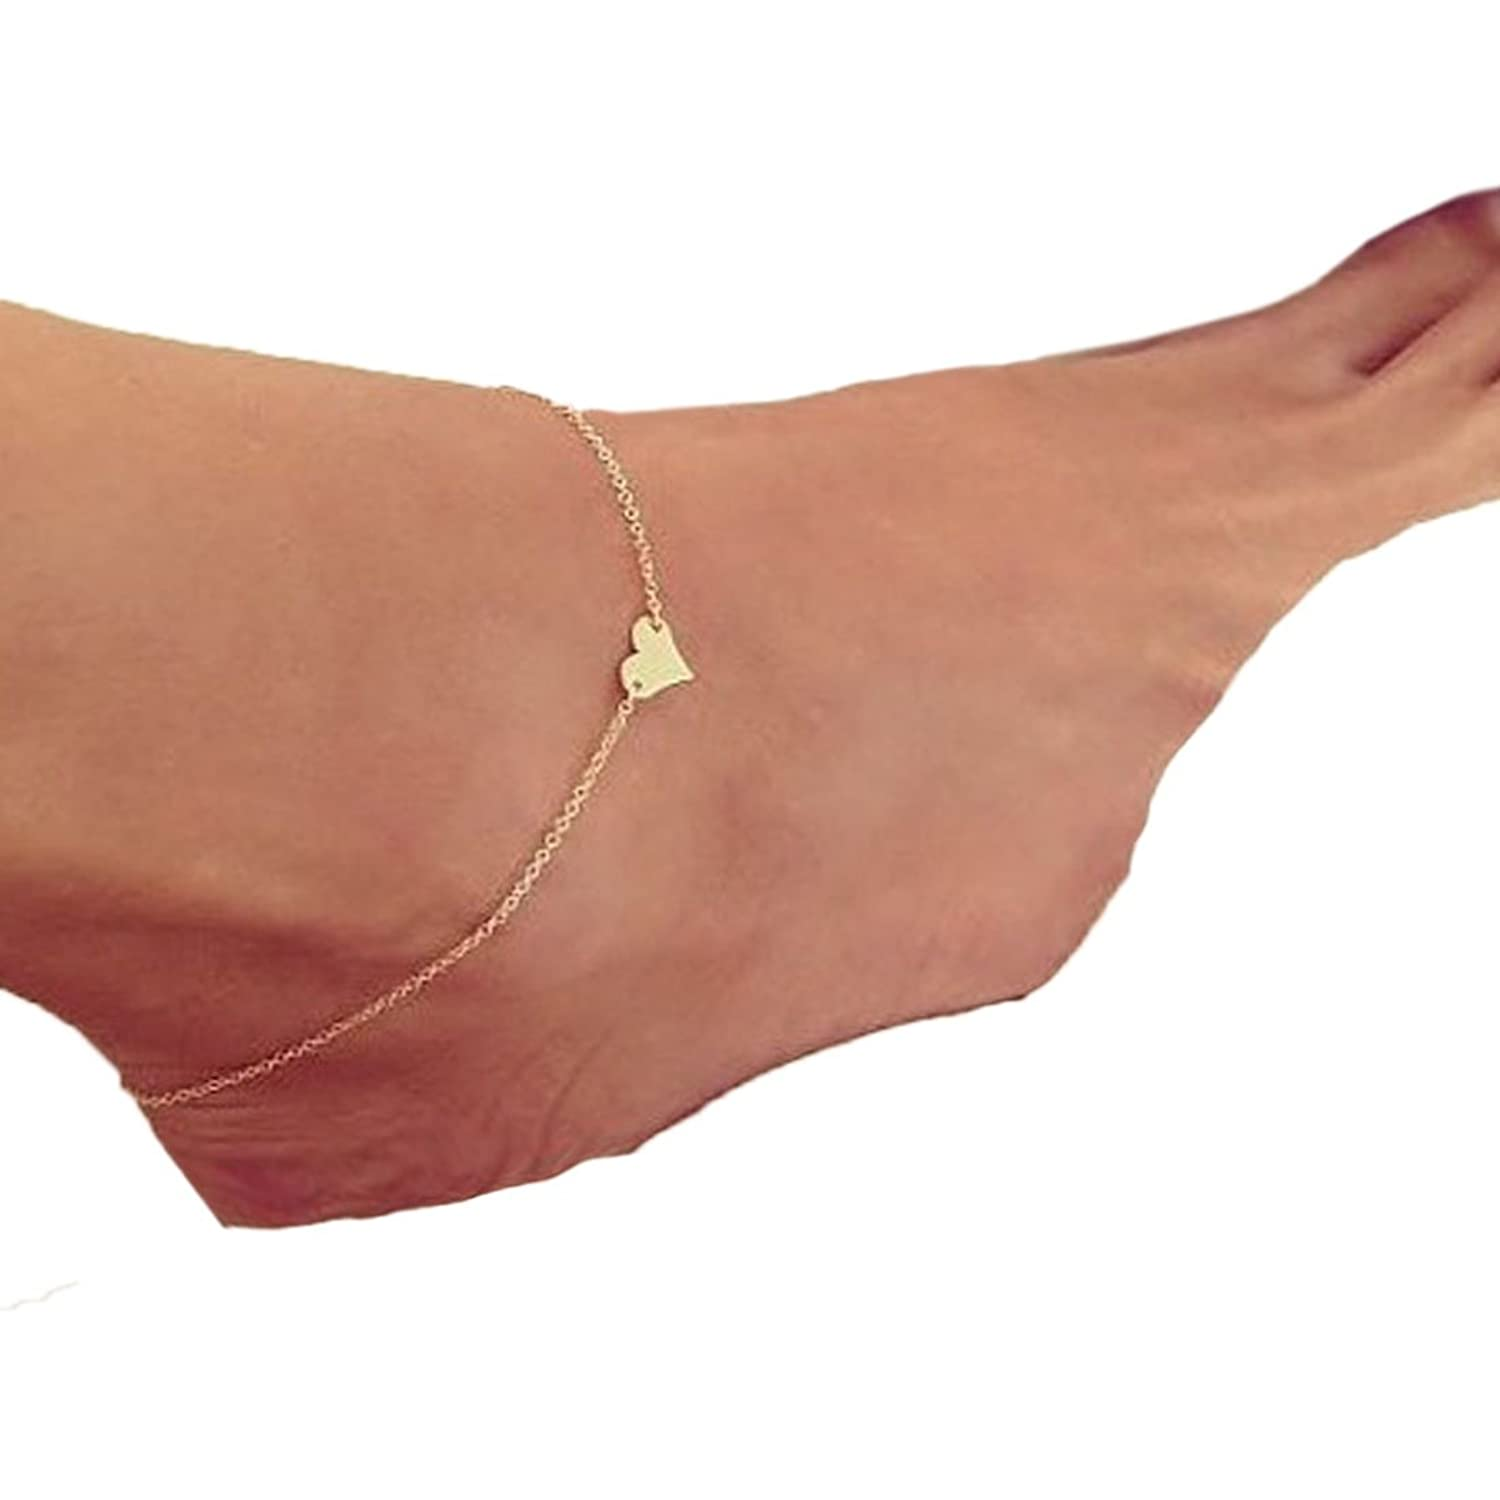 anklet inch heart bracelet bling charm gold filled figaro jewelry anklets chain beautiful